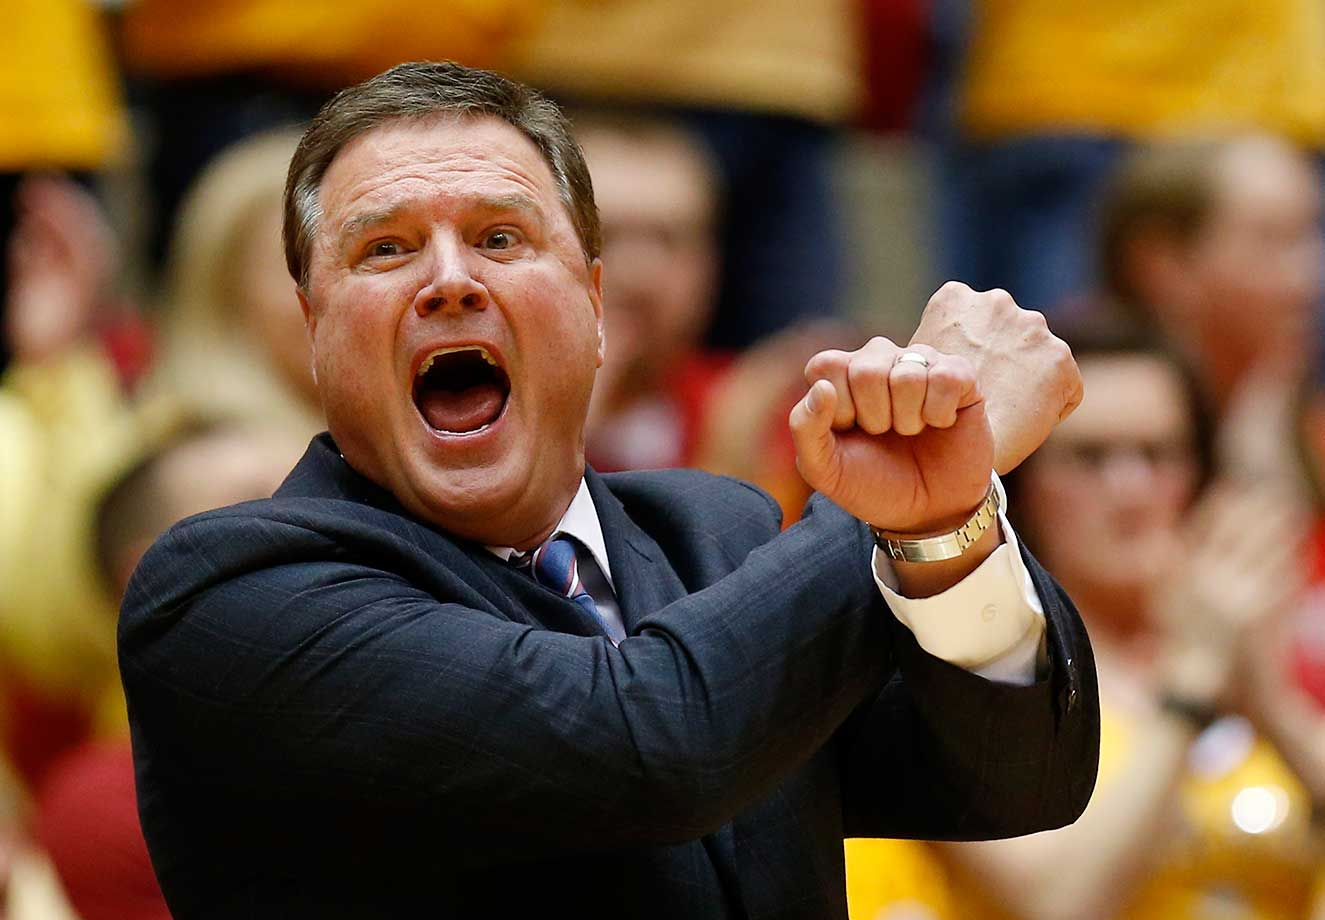 Head coach Bill Self of the Kansas Jayhawks signals a play from the bench against the Iowa State Cyclones at Hilton Coliseum in Ames, Iowa.